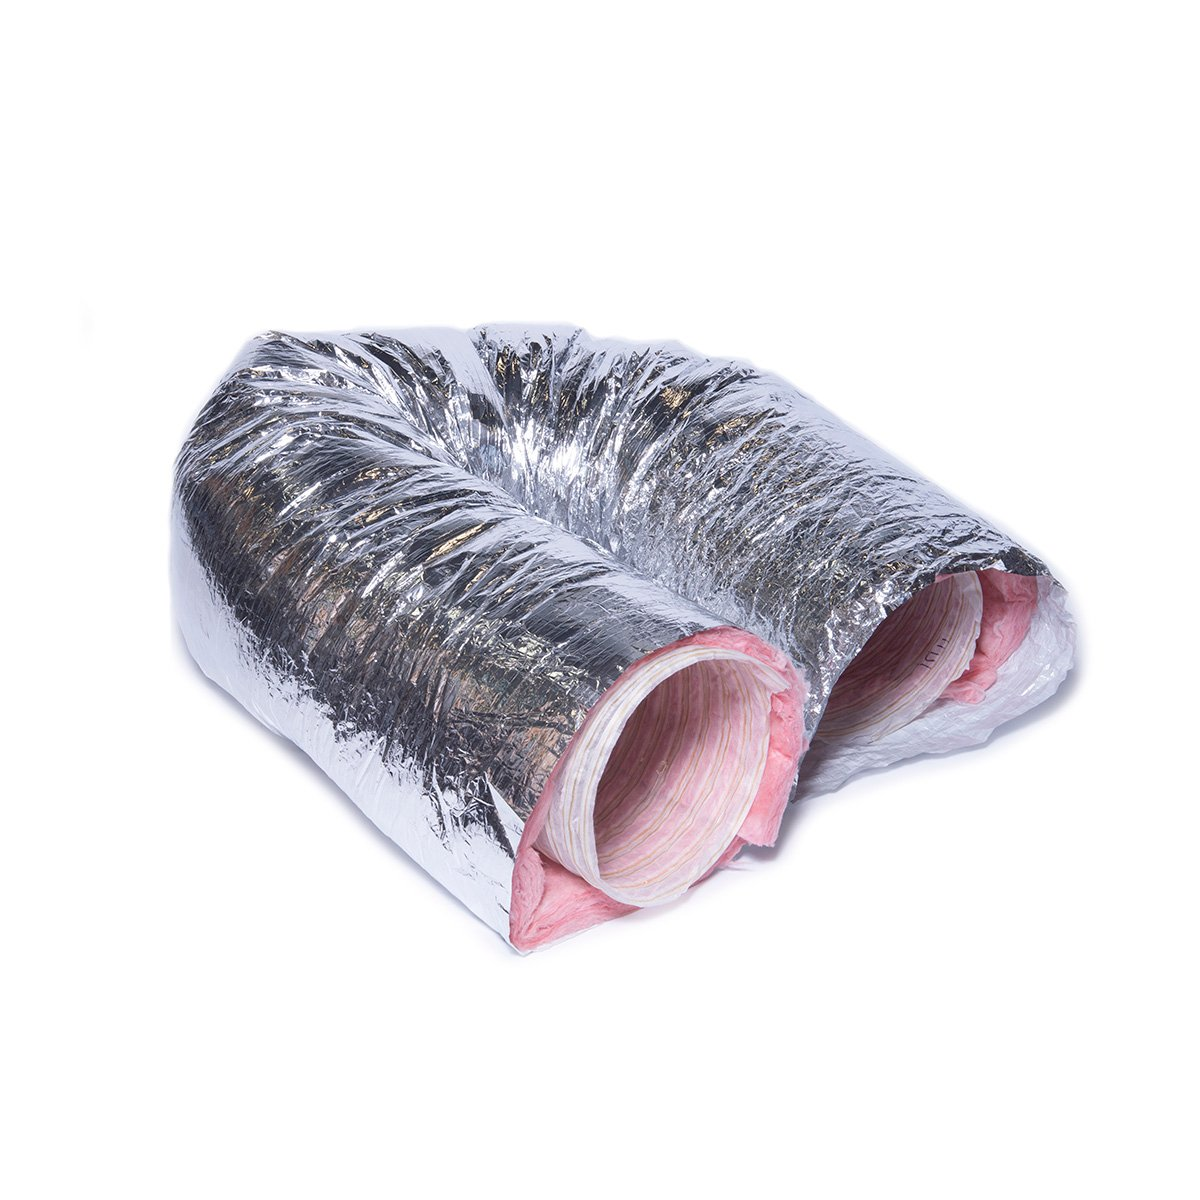 "Return Air Duct, 4860, 20"" x 10', R8"